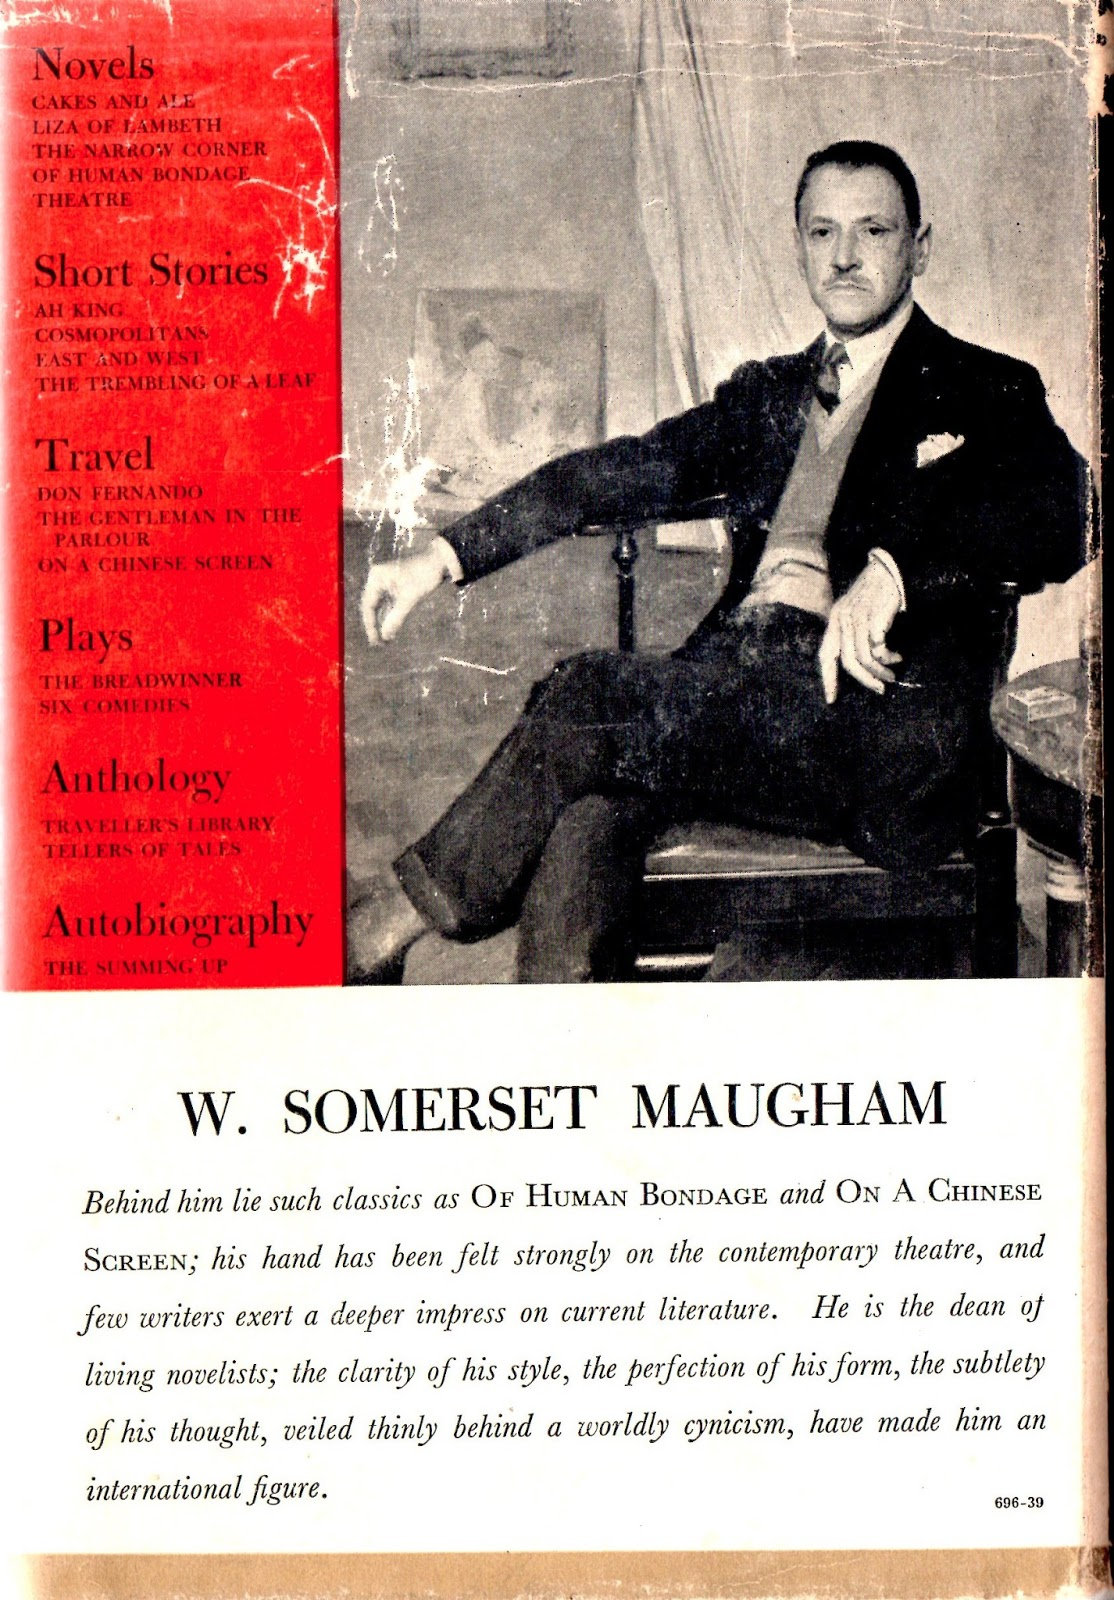 My Maugham Collection The Mixture As Before W Somerset